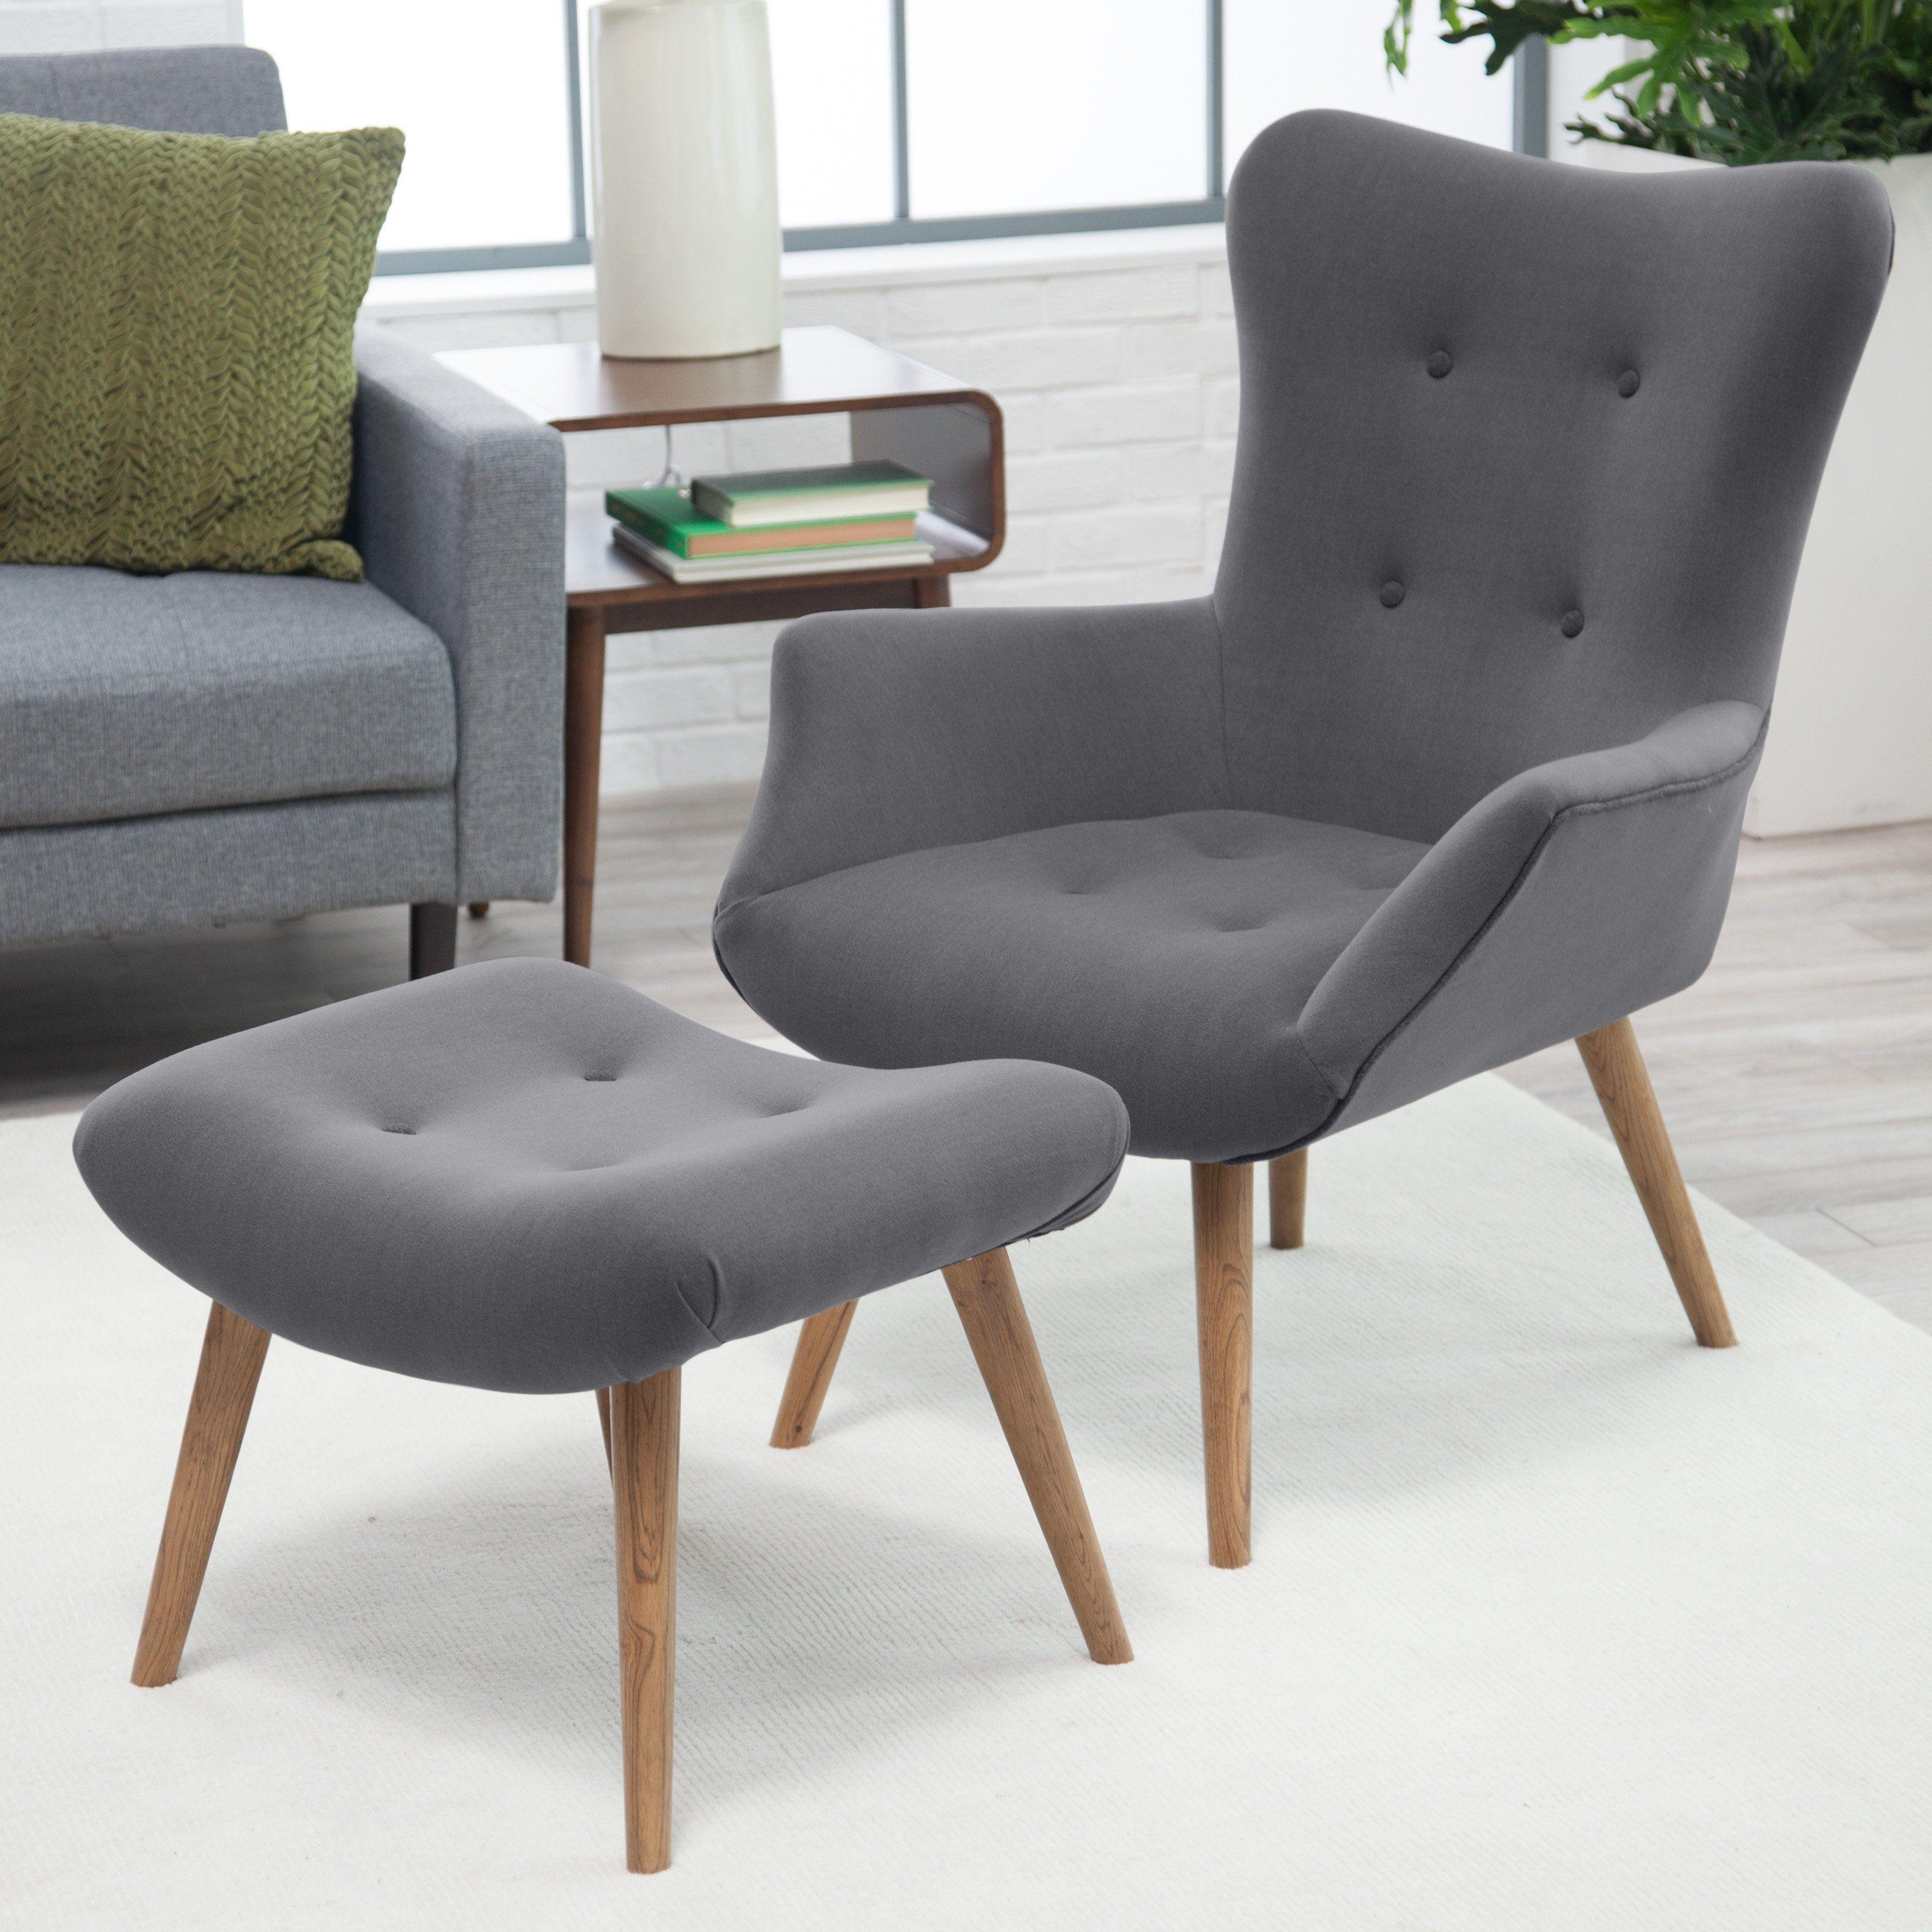 Sensational Belham Living Matthias Mid Century Modern Chair And Ottoman Pabps2019 Chair Design Images Pabps2019Com